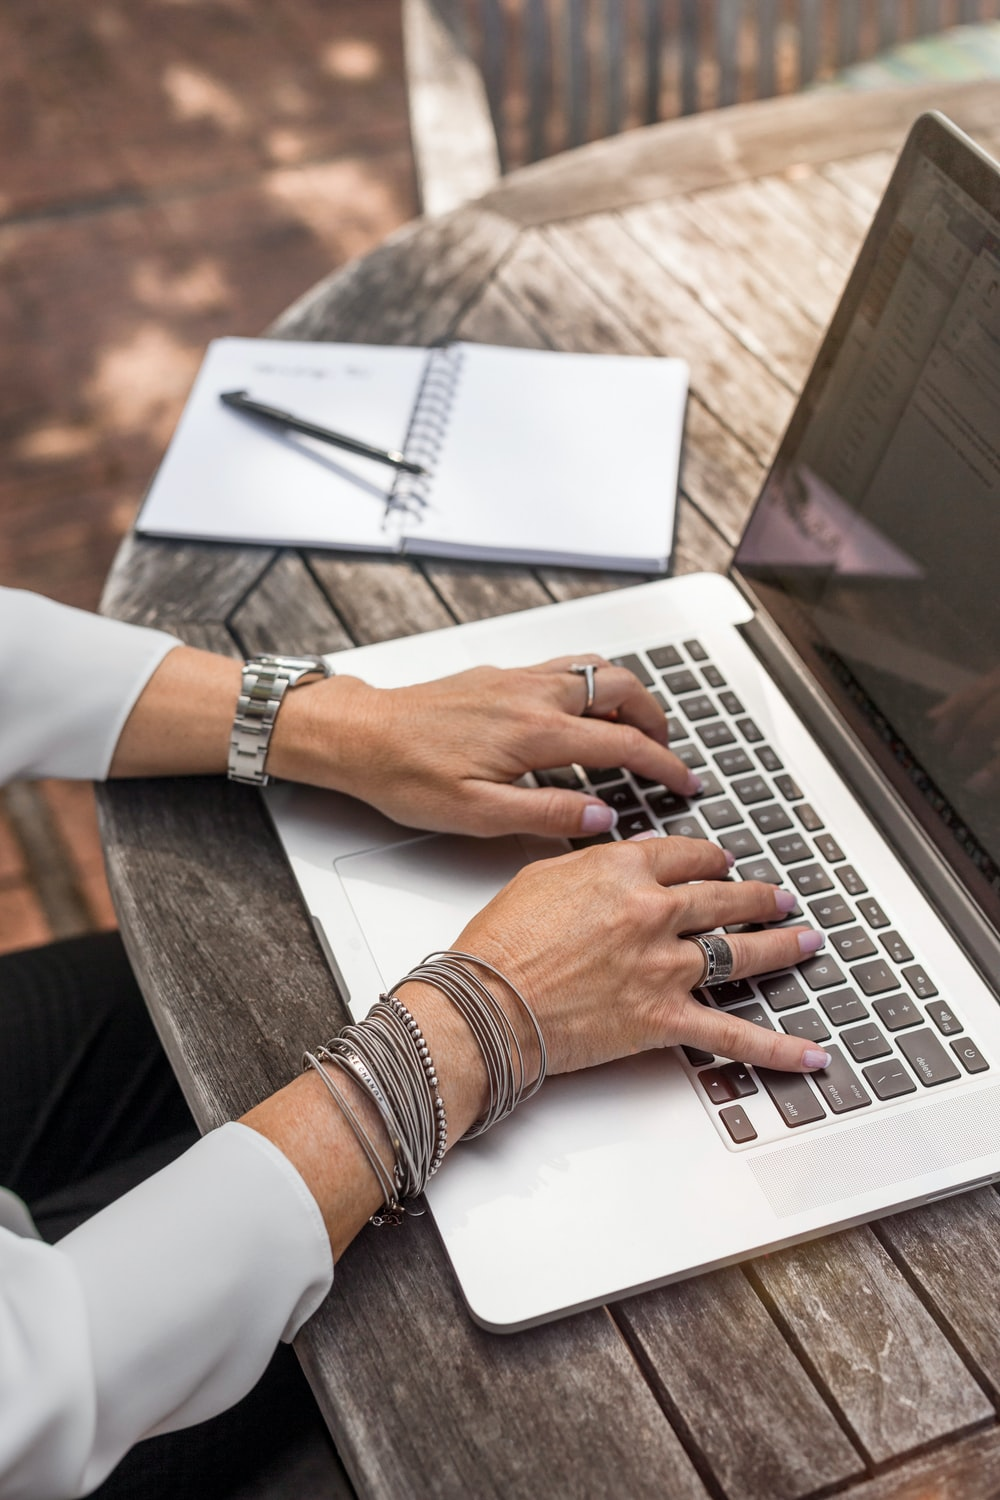 person typing on MacBook Pro on brown wooden table during daytime photo